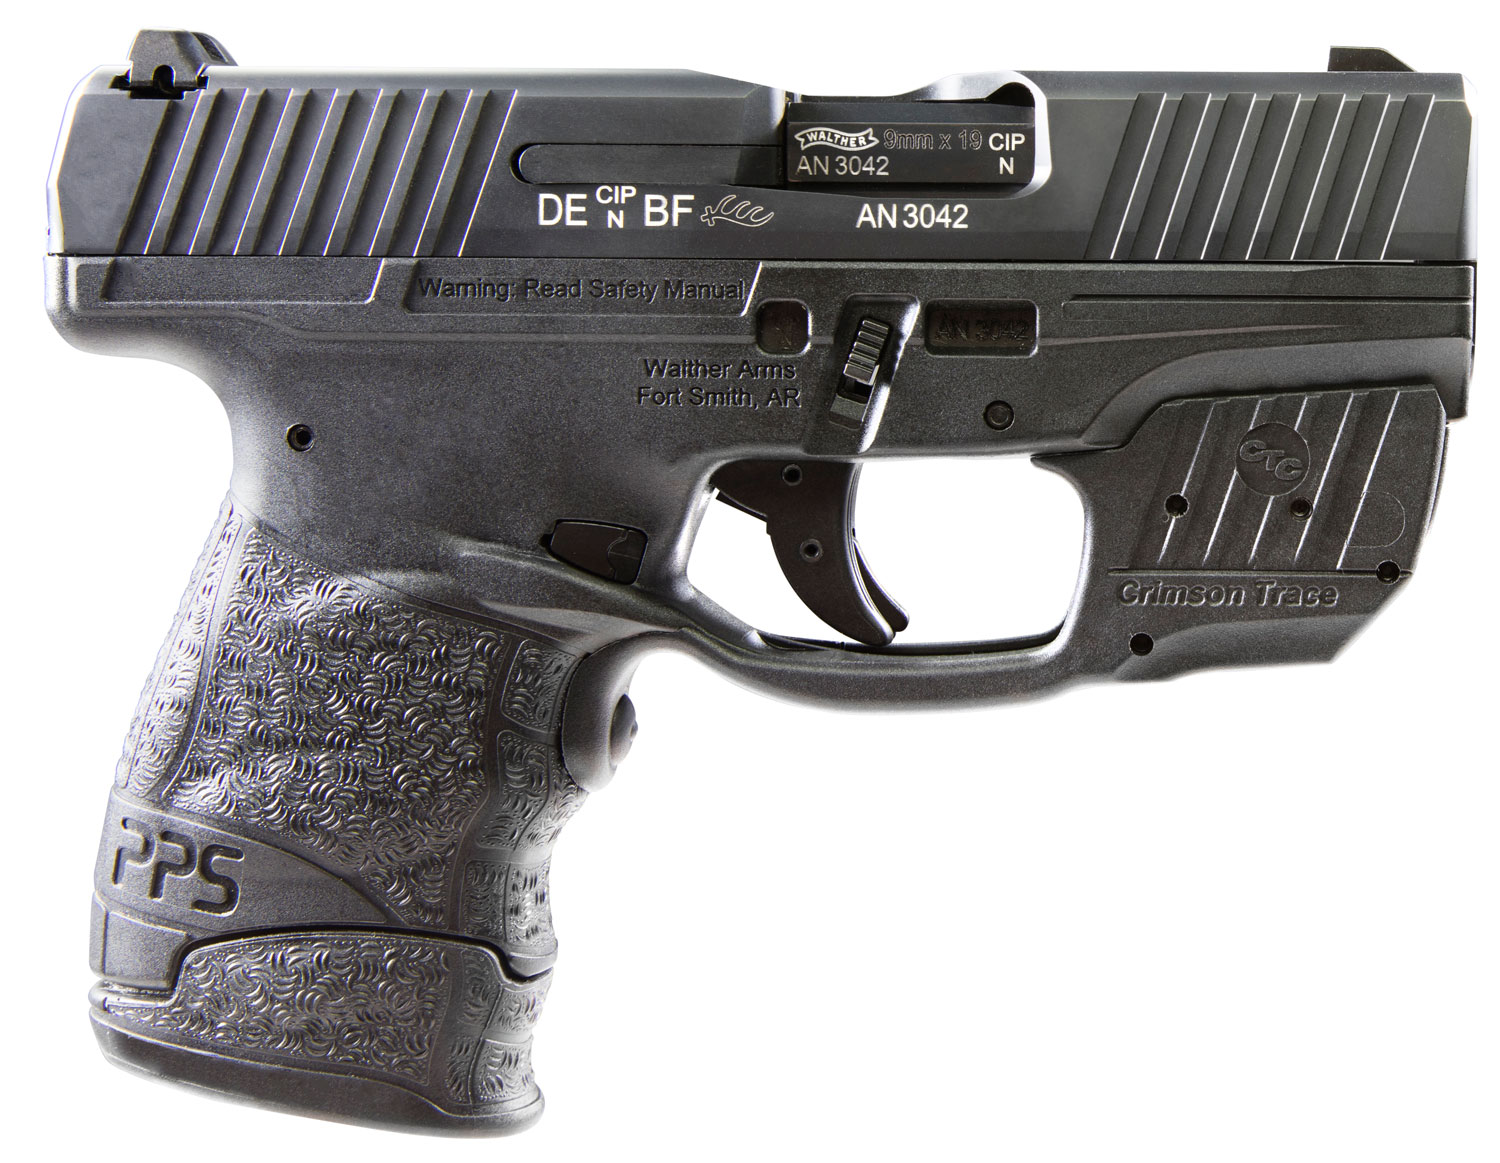 WAL 2805963 PPS M2 9MM 7RD W/CT GRIPS